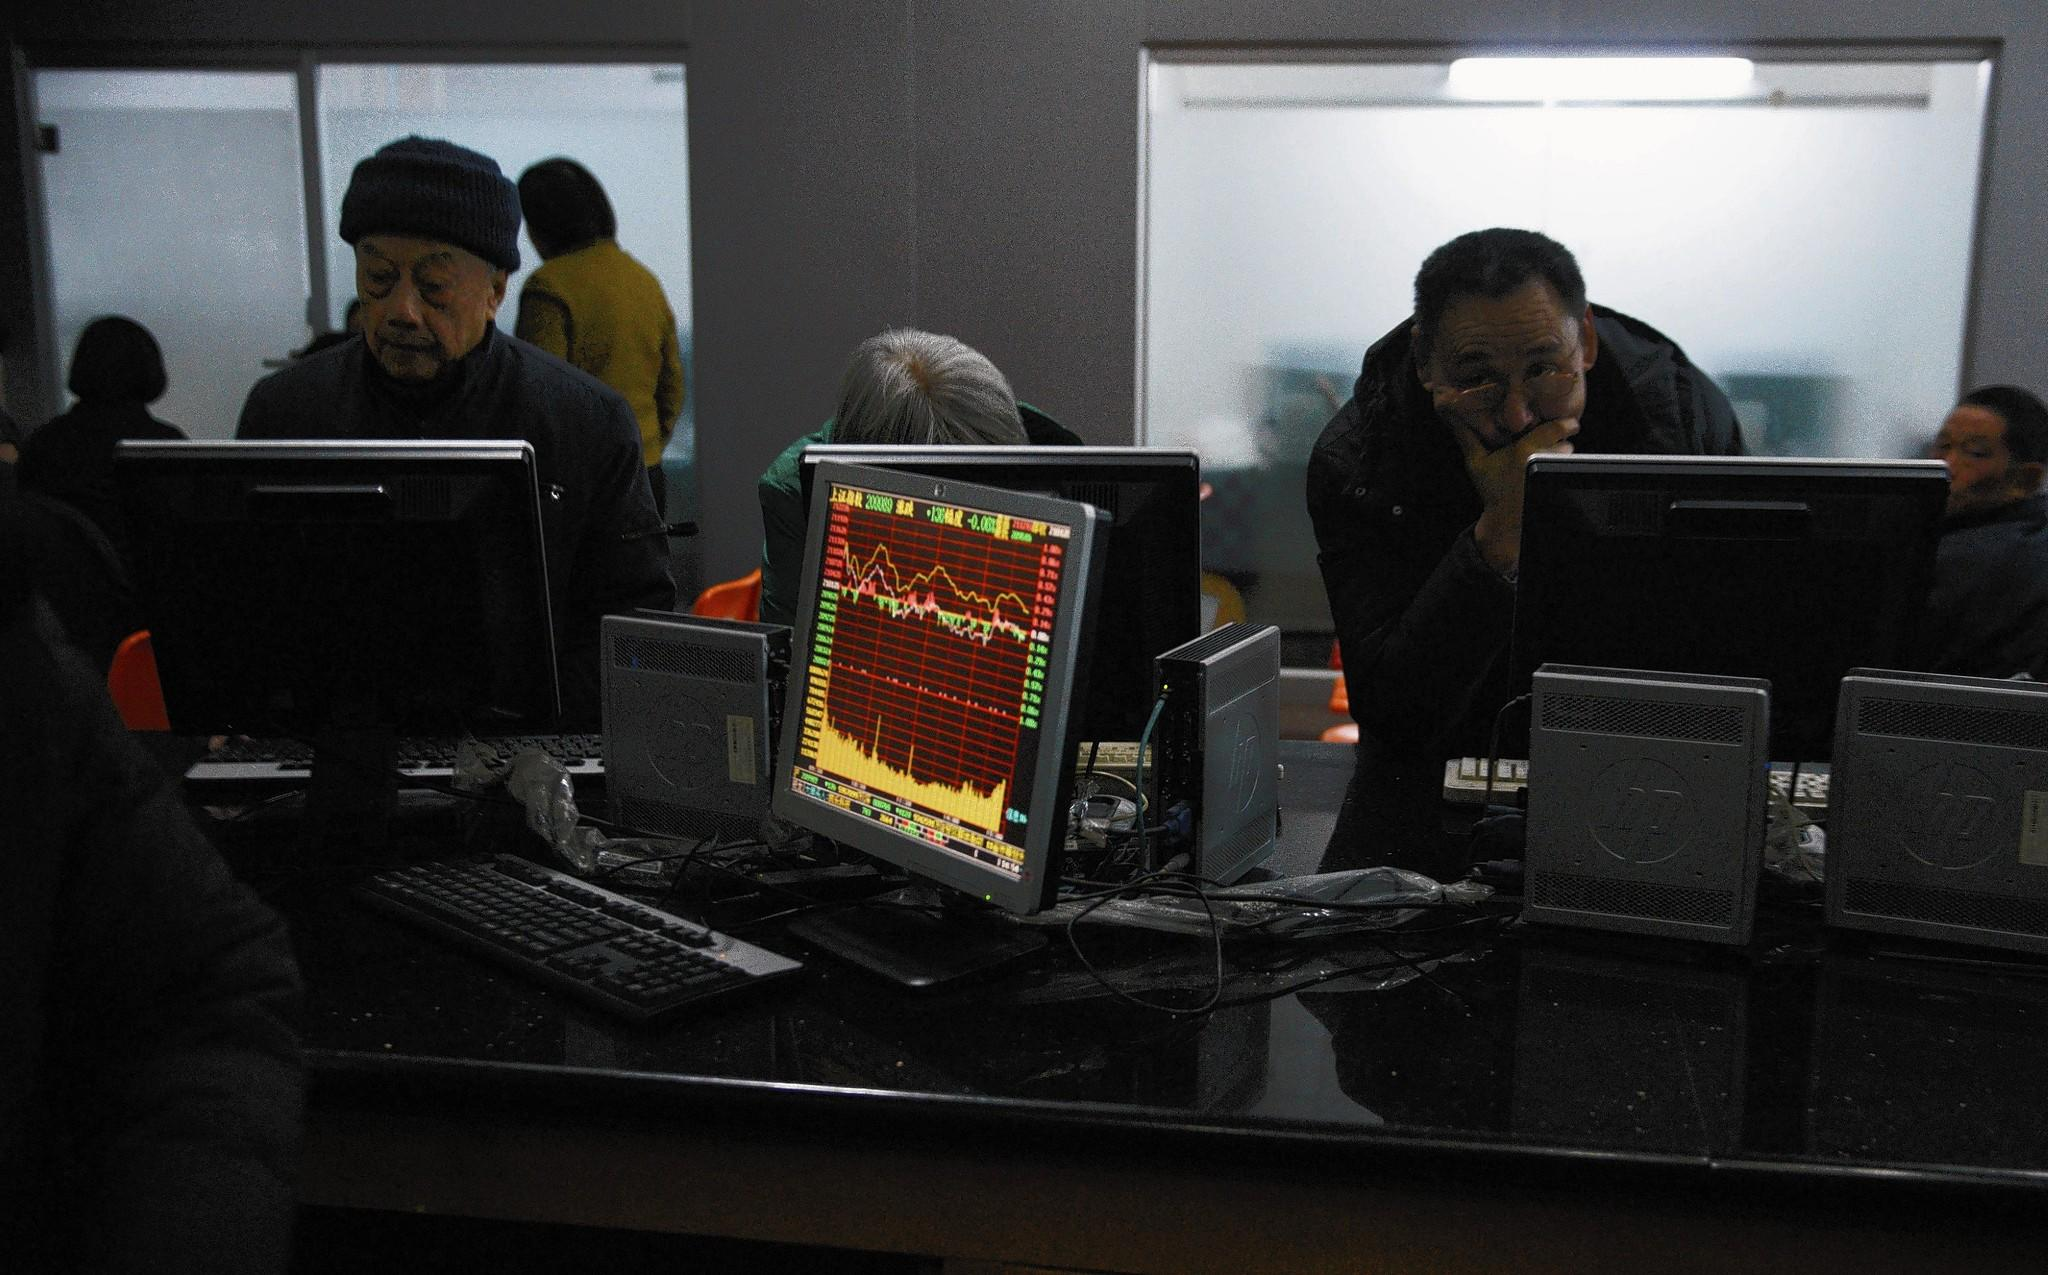 Investors monitor stocks in China, where an unsettled economy could provide reason for concern in 2014.